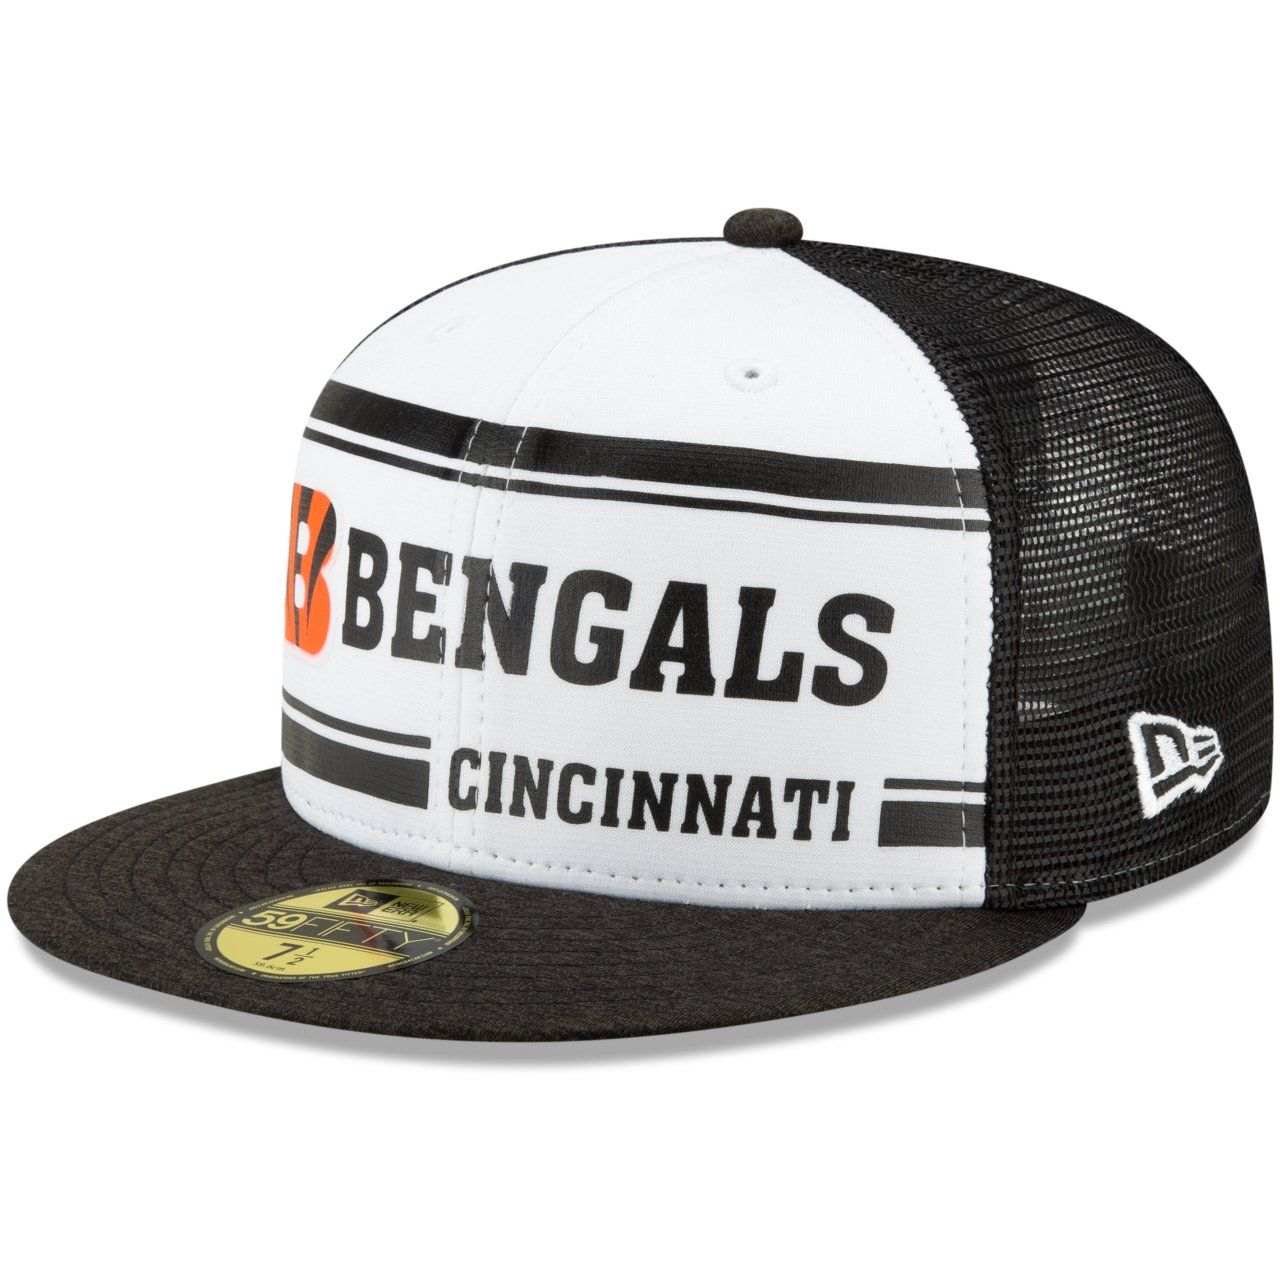 amfoo - New Era 59Fifty Cap - Sideline 70s Home Cincinnati Bengals